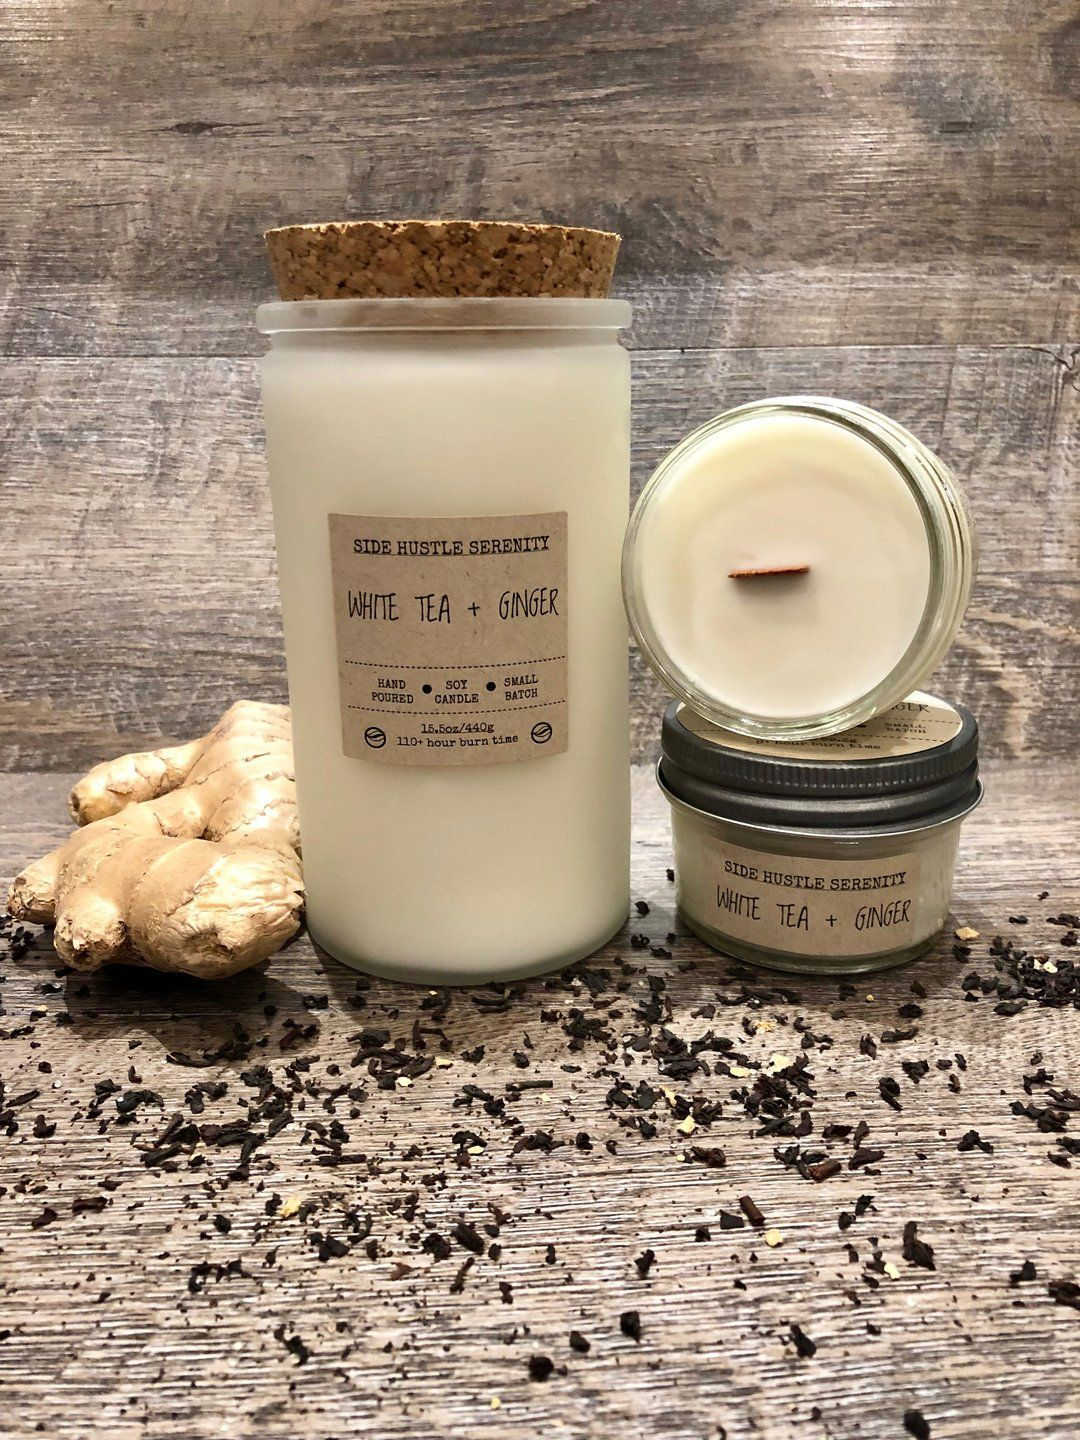 White Tea + Ginger Scented Soy Candle | Soy candles, Mini ...